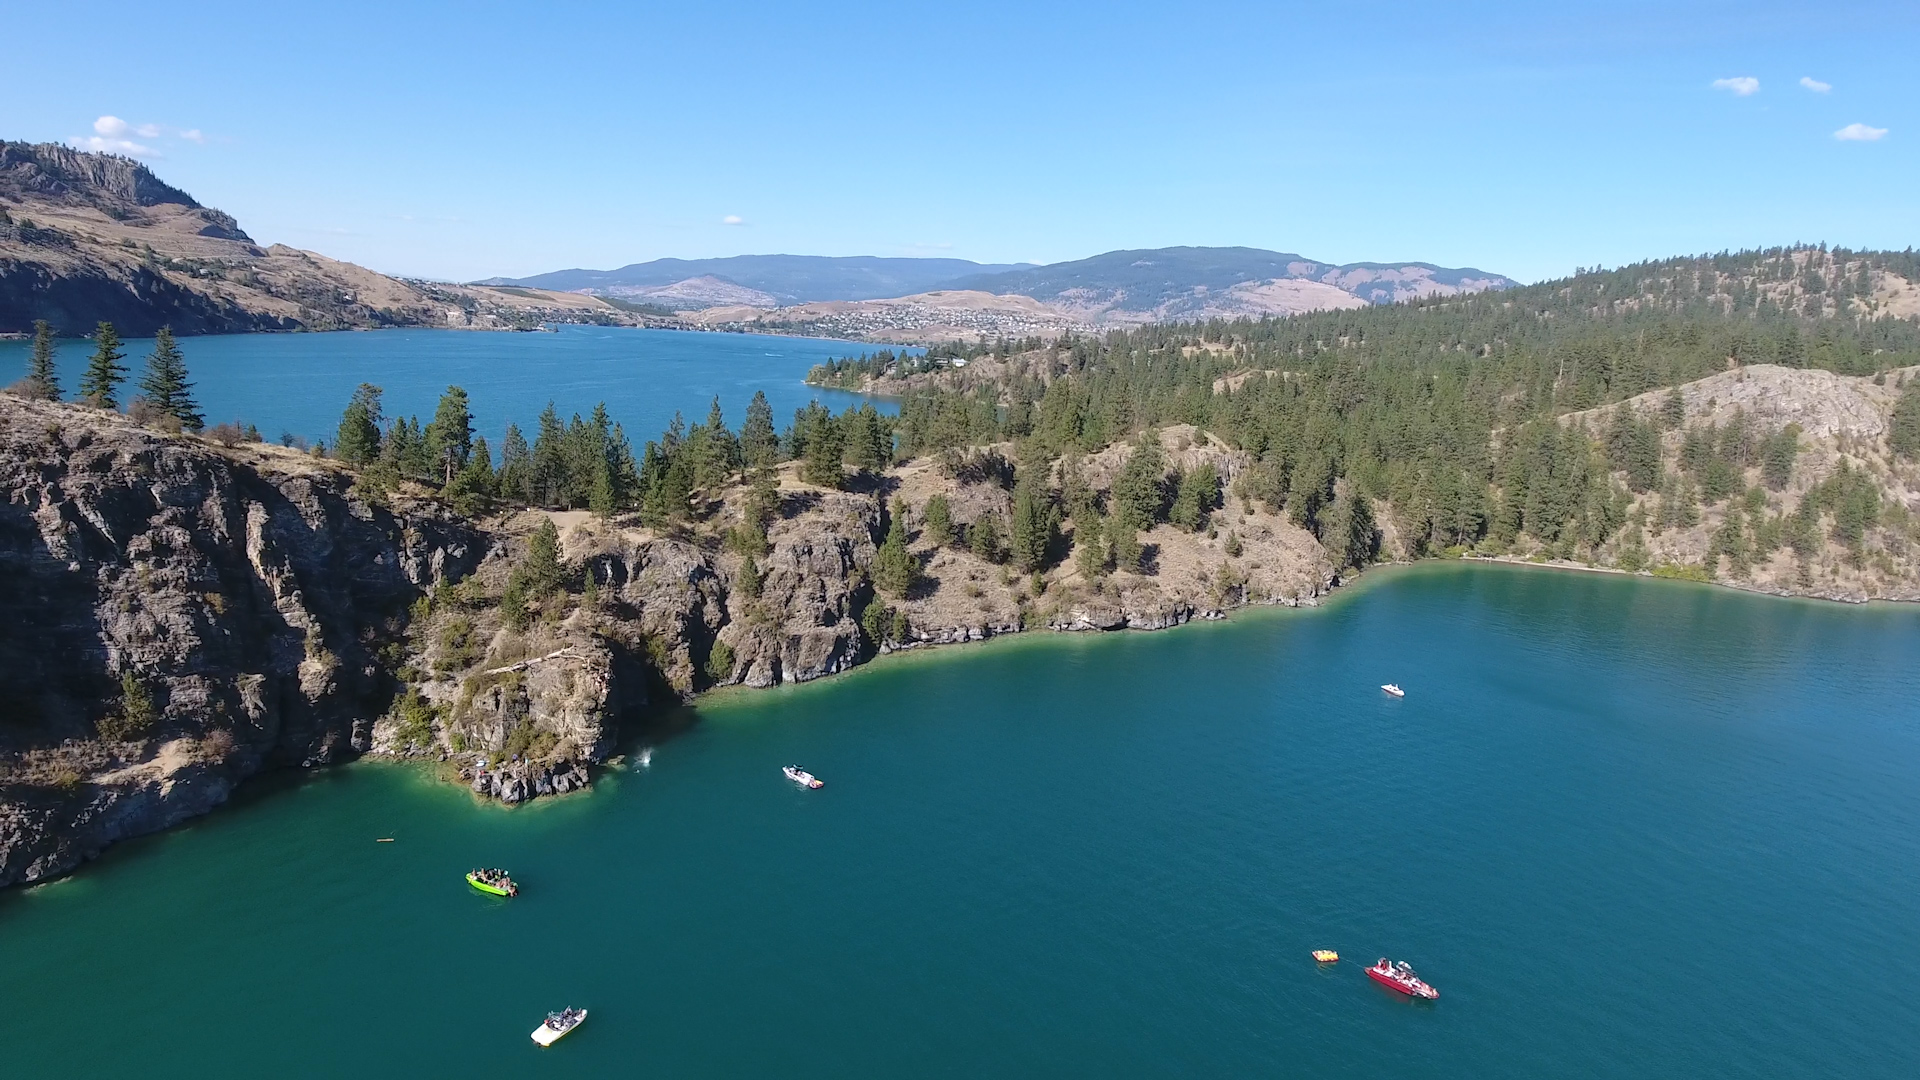 Kalamalka Lake Provincial Park - Cosens Bay and the cliffs